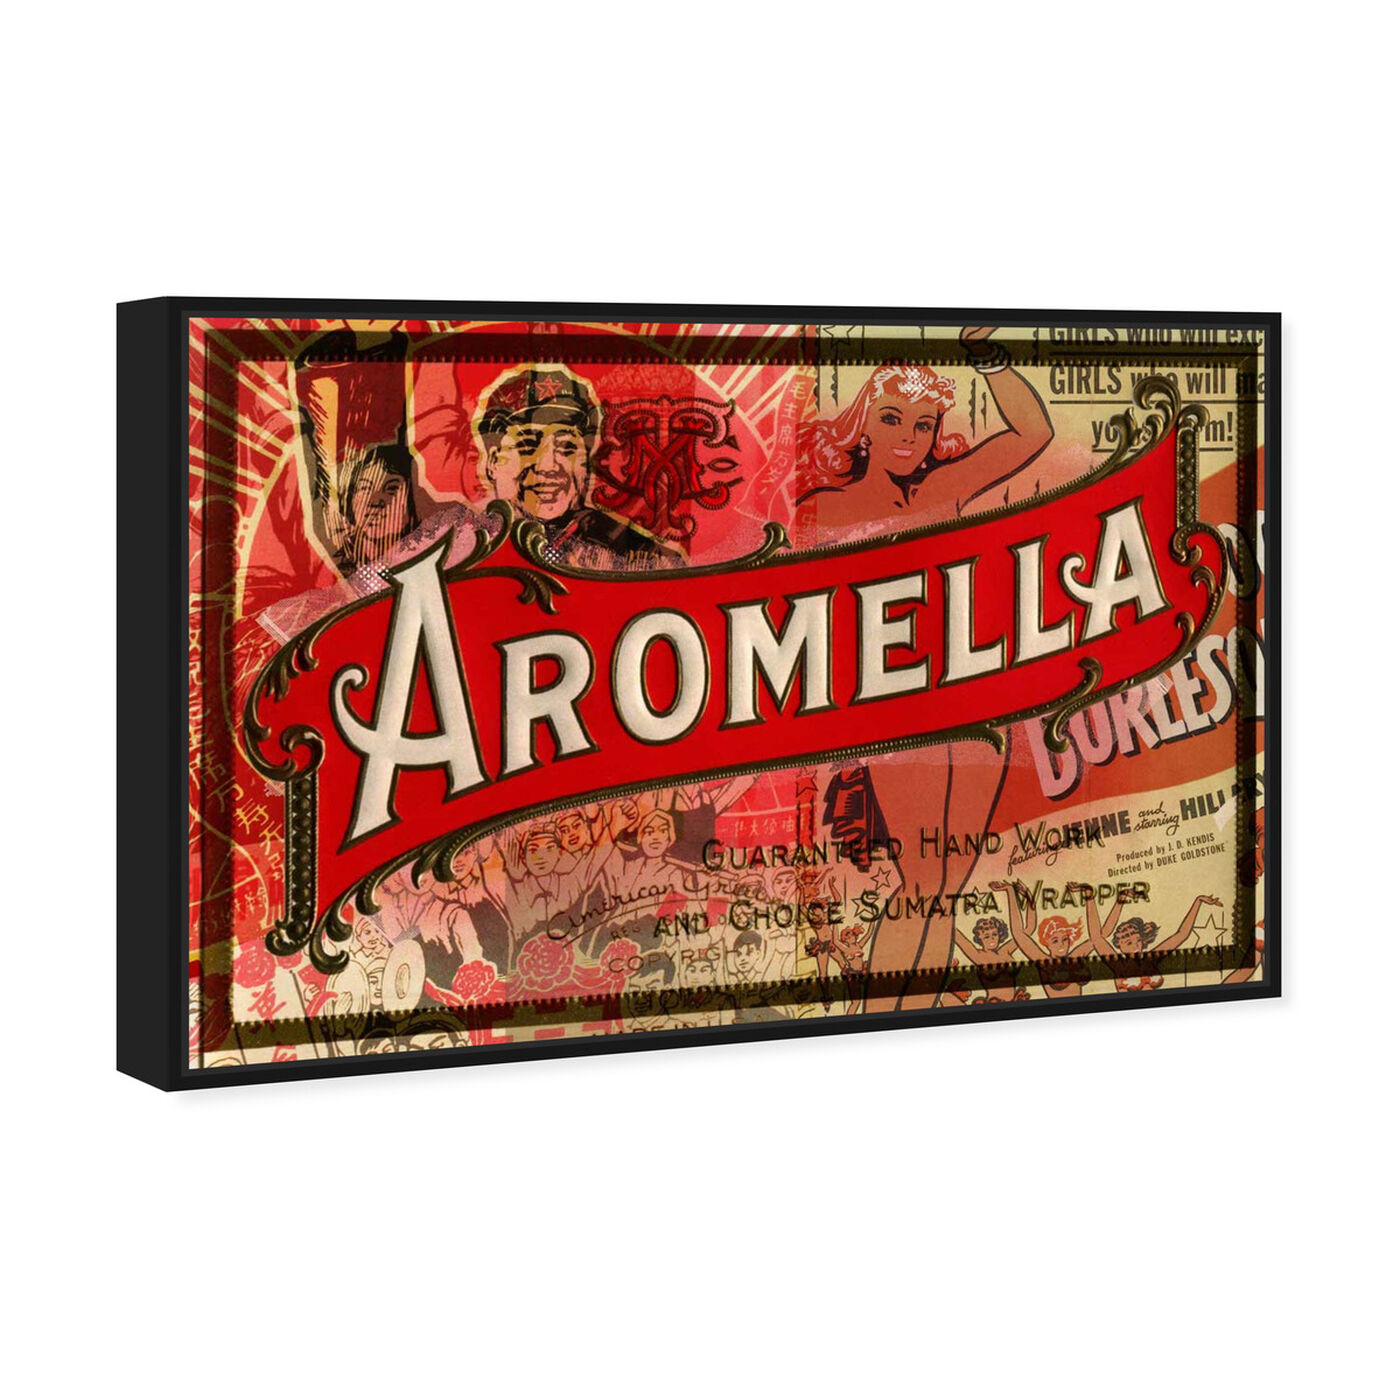 Angled view of Aromella featuring advertising and posters art.